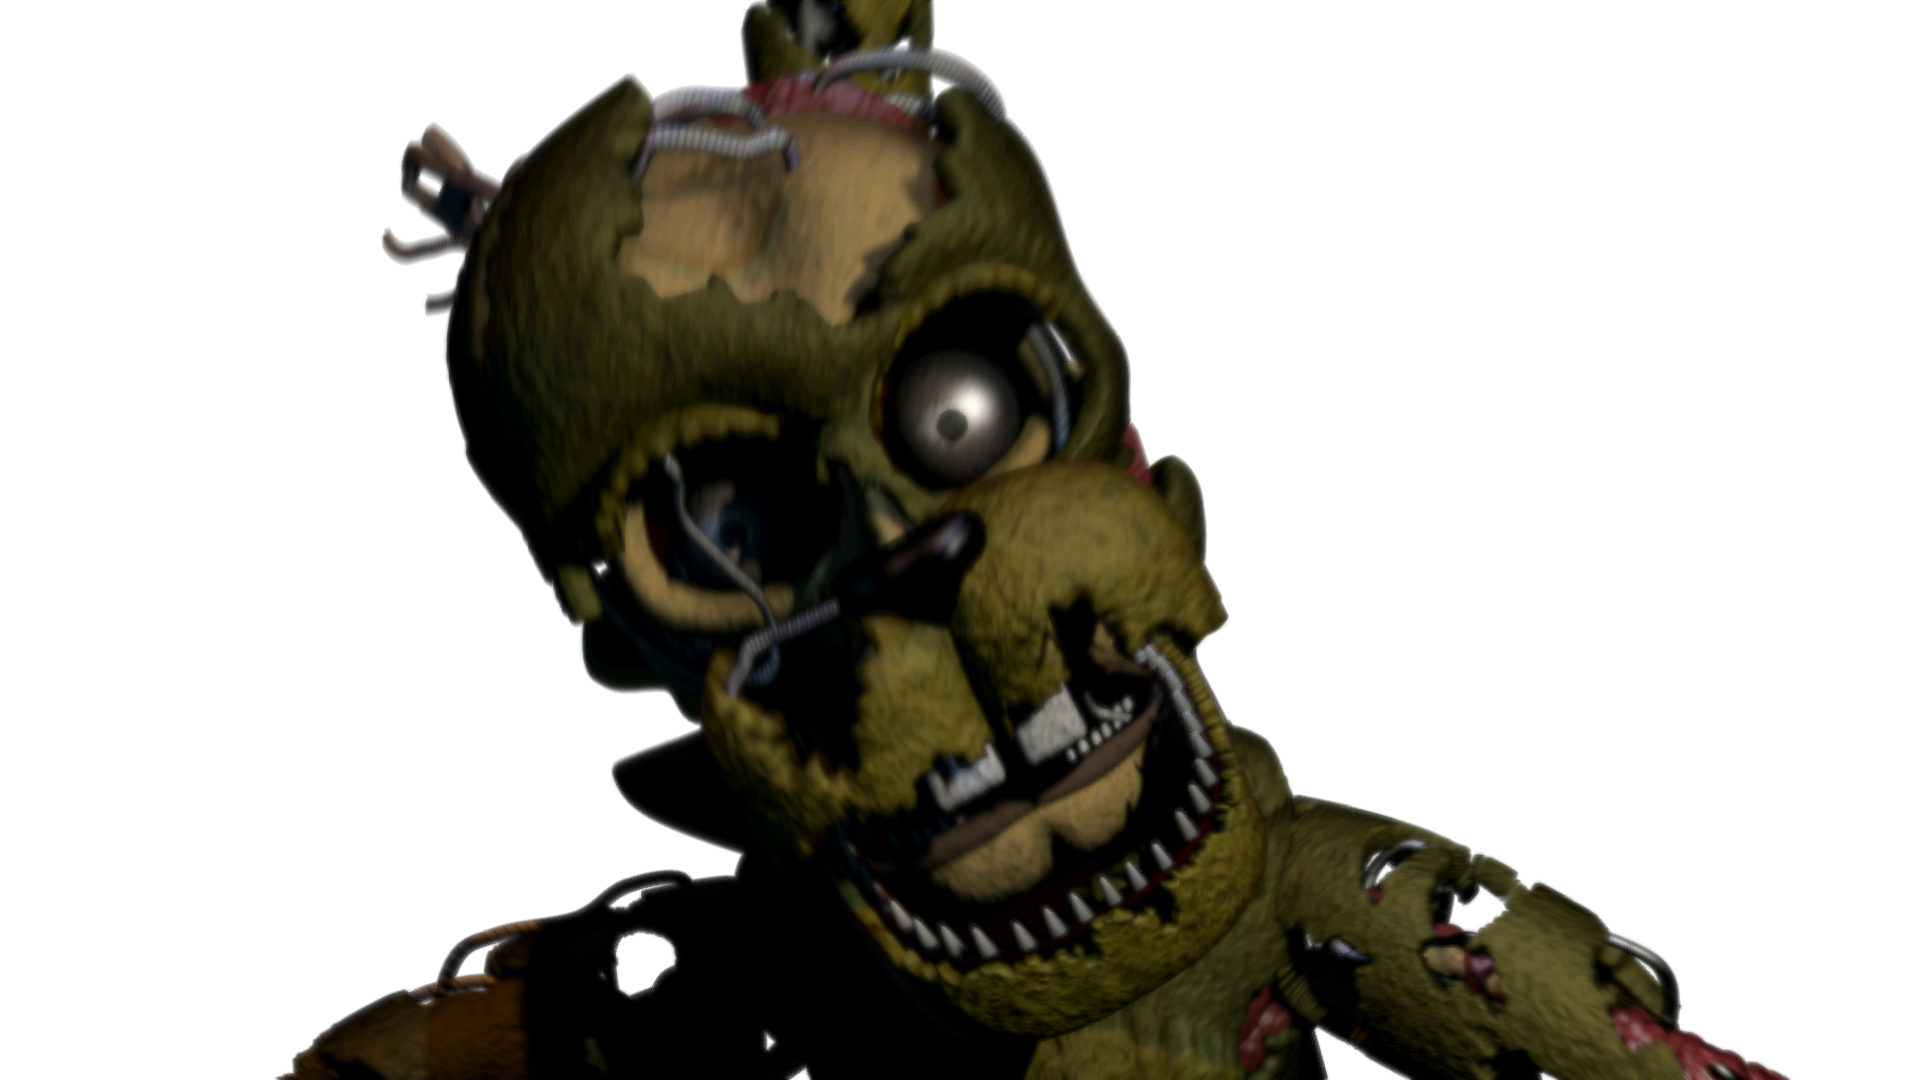 Transparent fnaf 6 springtrap. What happened to the